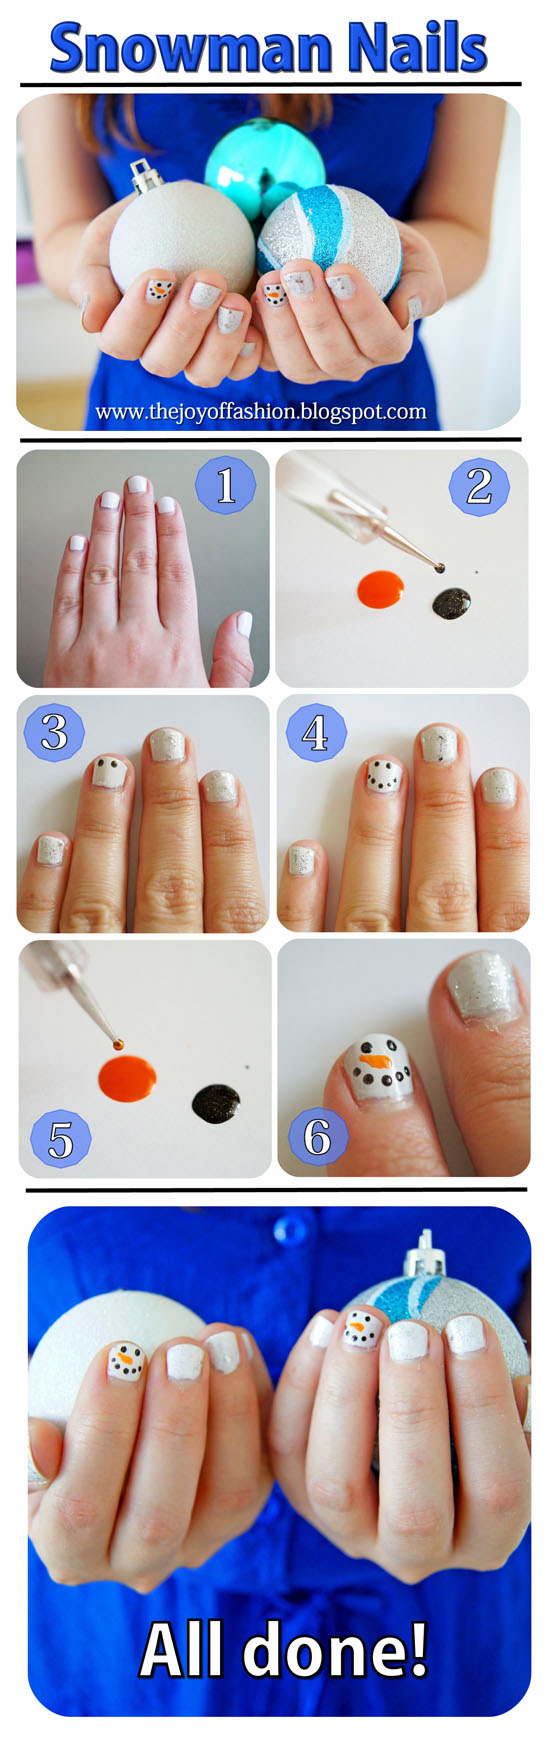 12 Dec - Snowman Nails - Small